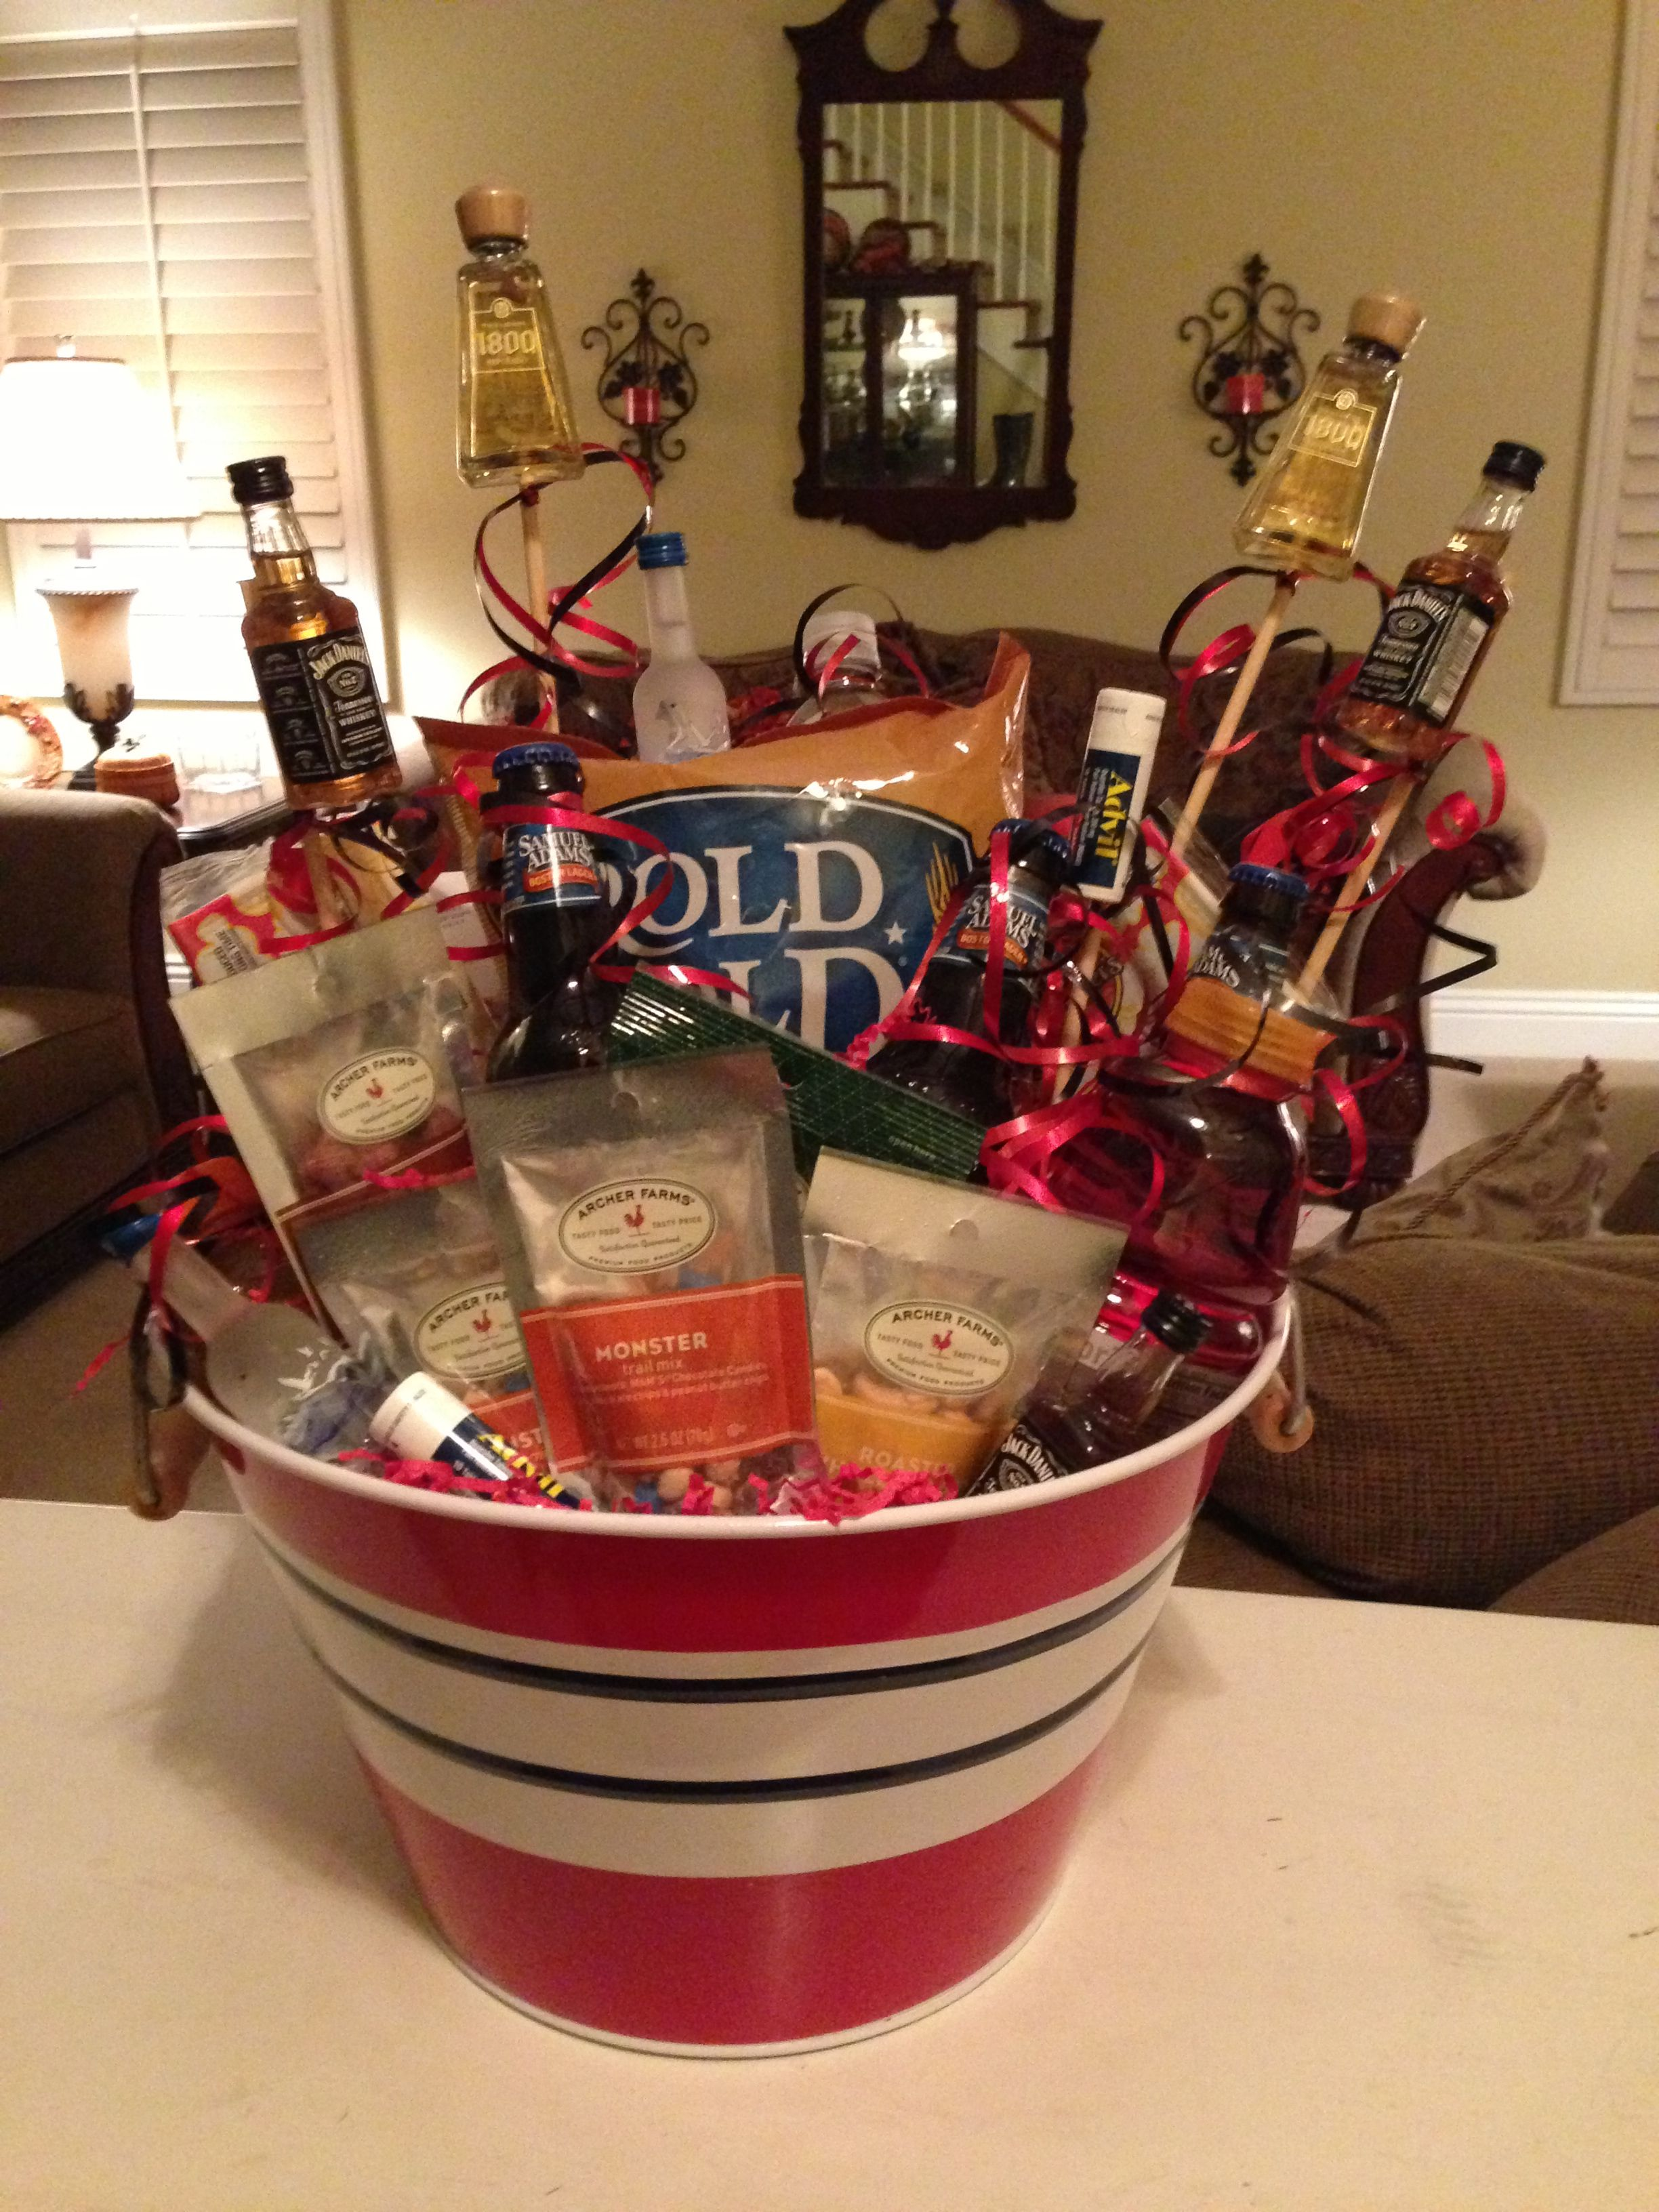 Bachelor party basket for my soon to be hubby